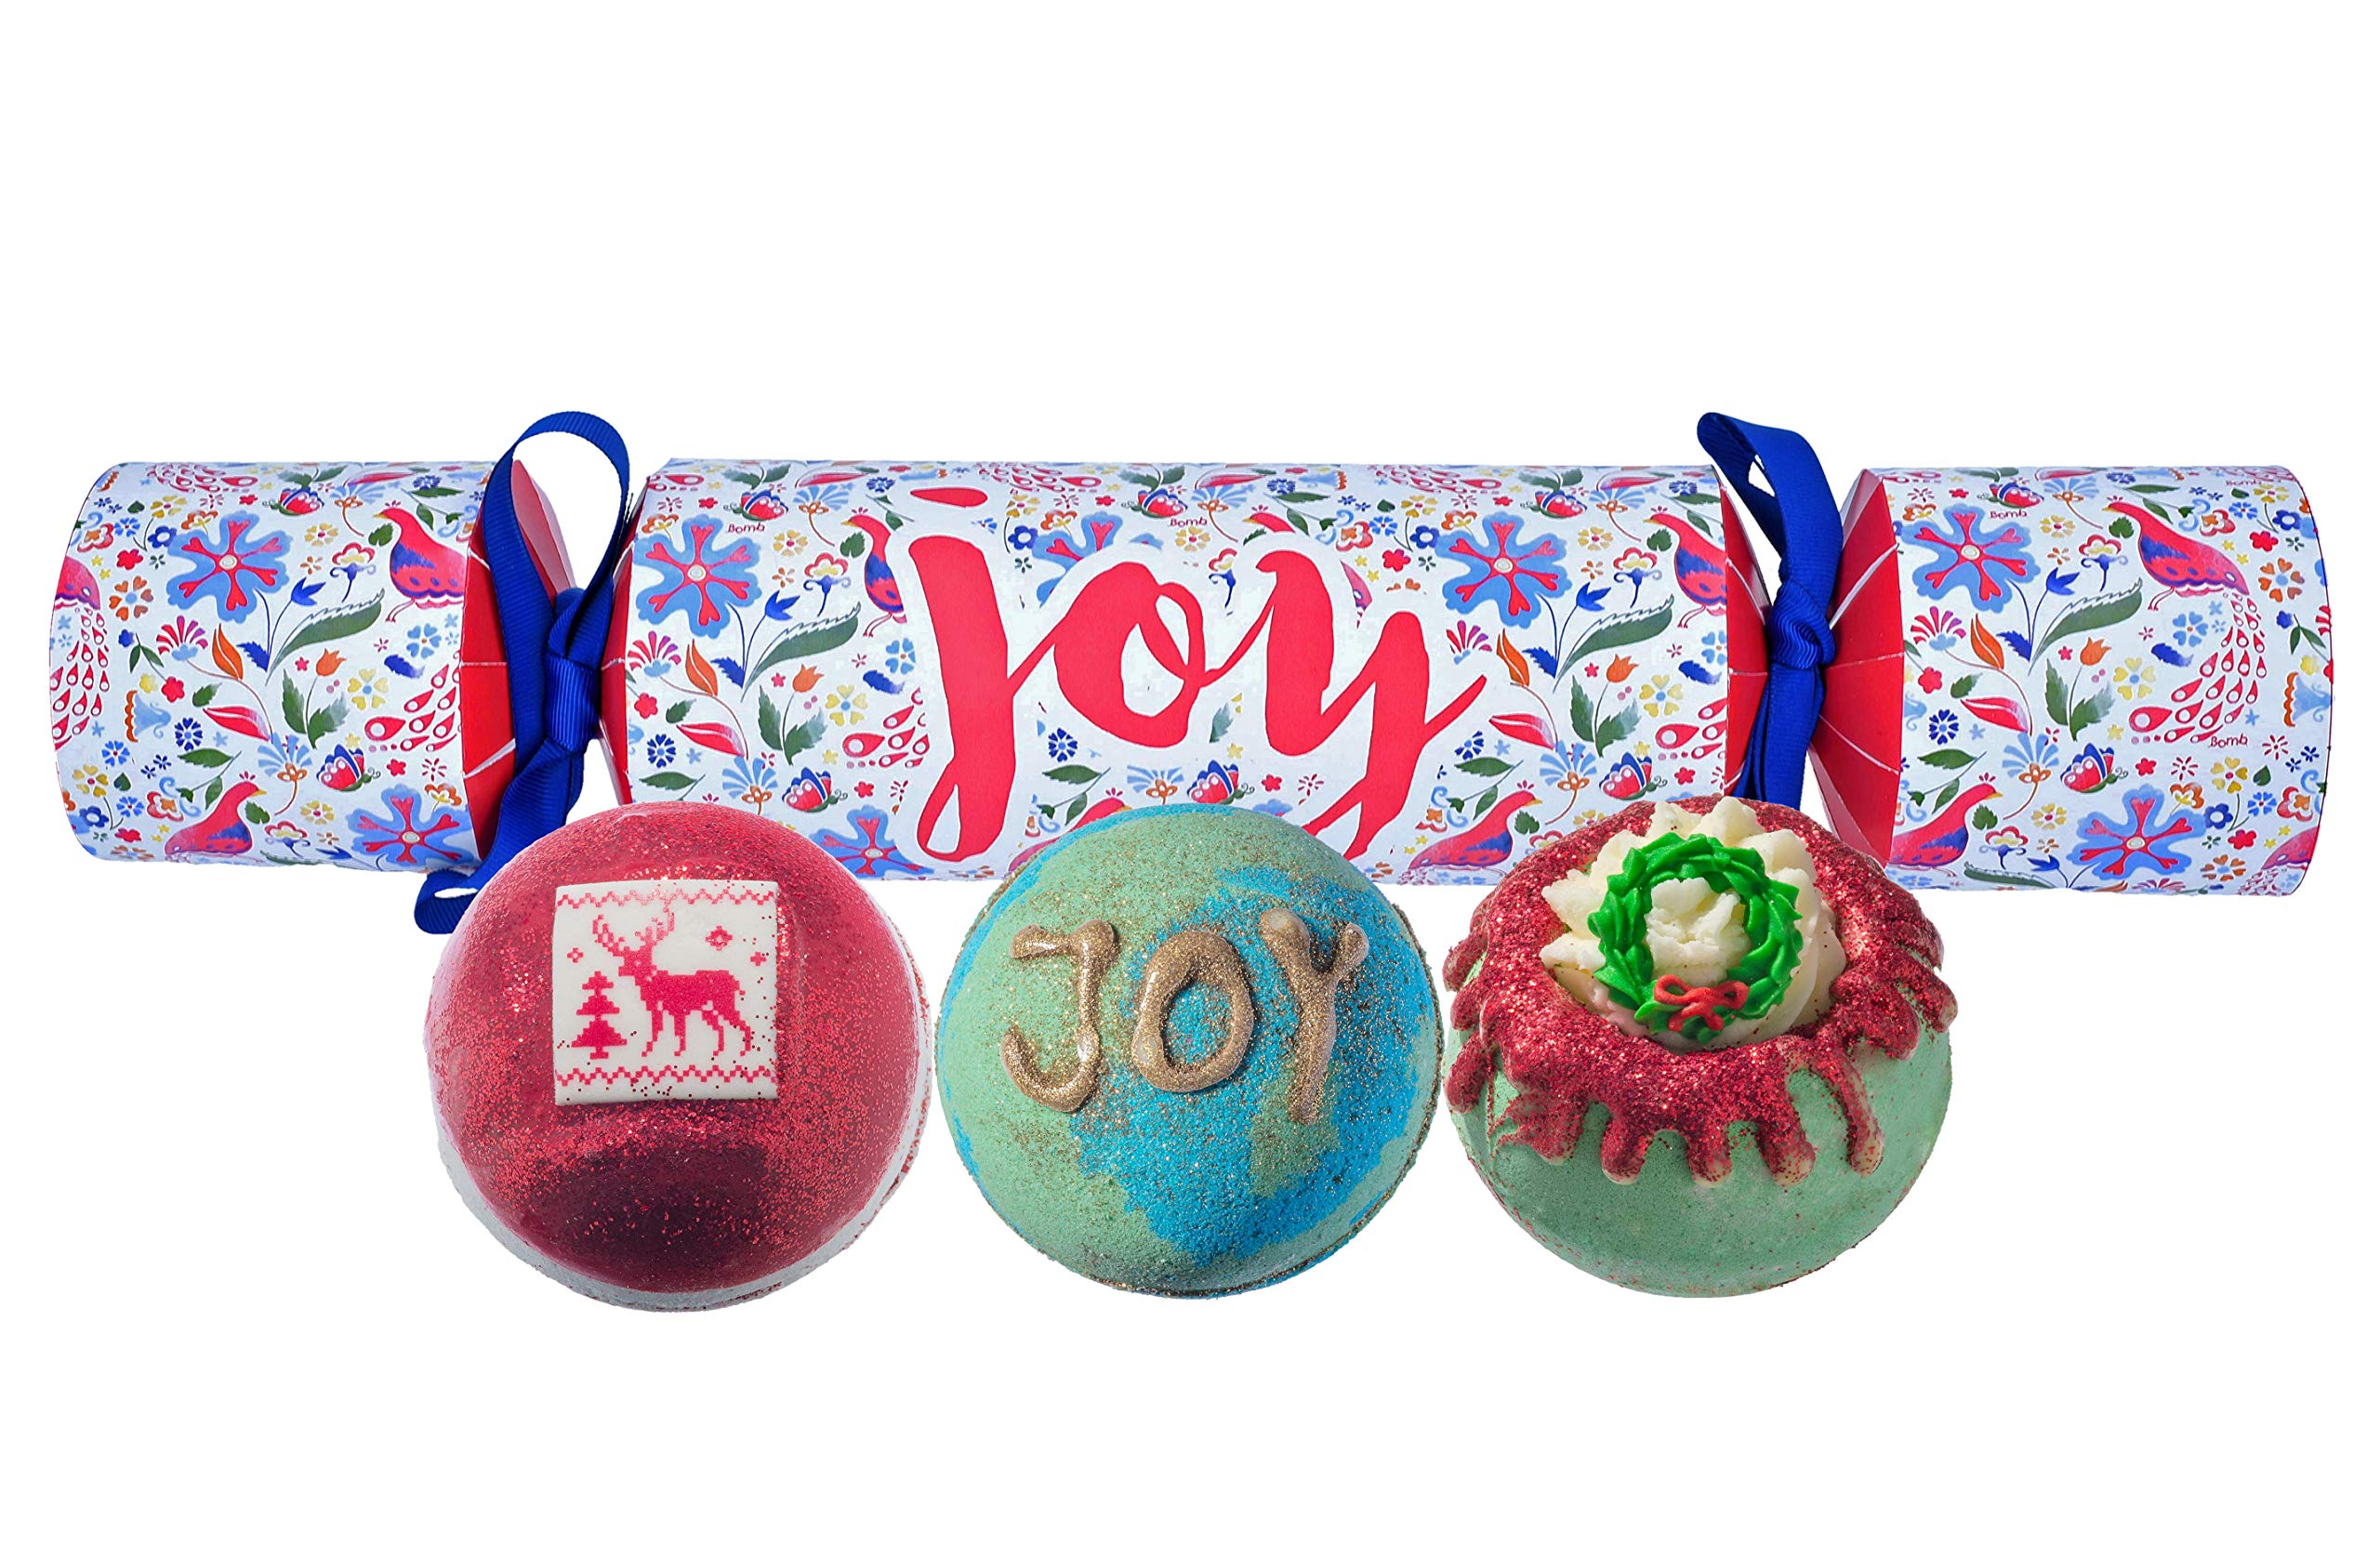 Bomb Cosmetics Joy Cracker Handmade Gift Pack